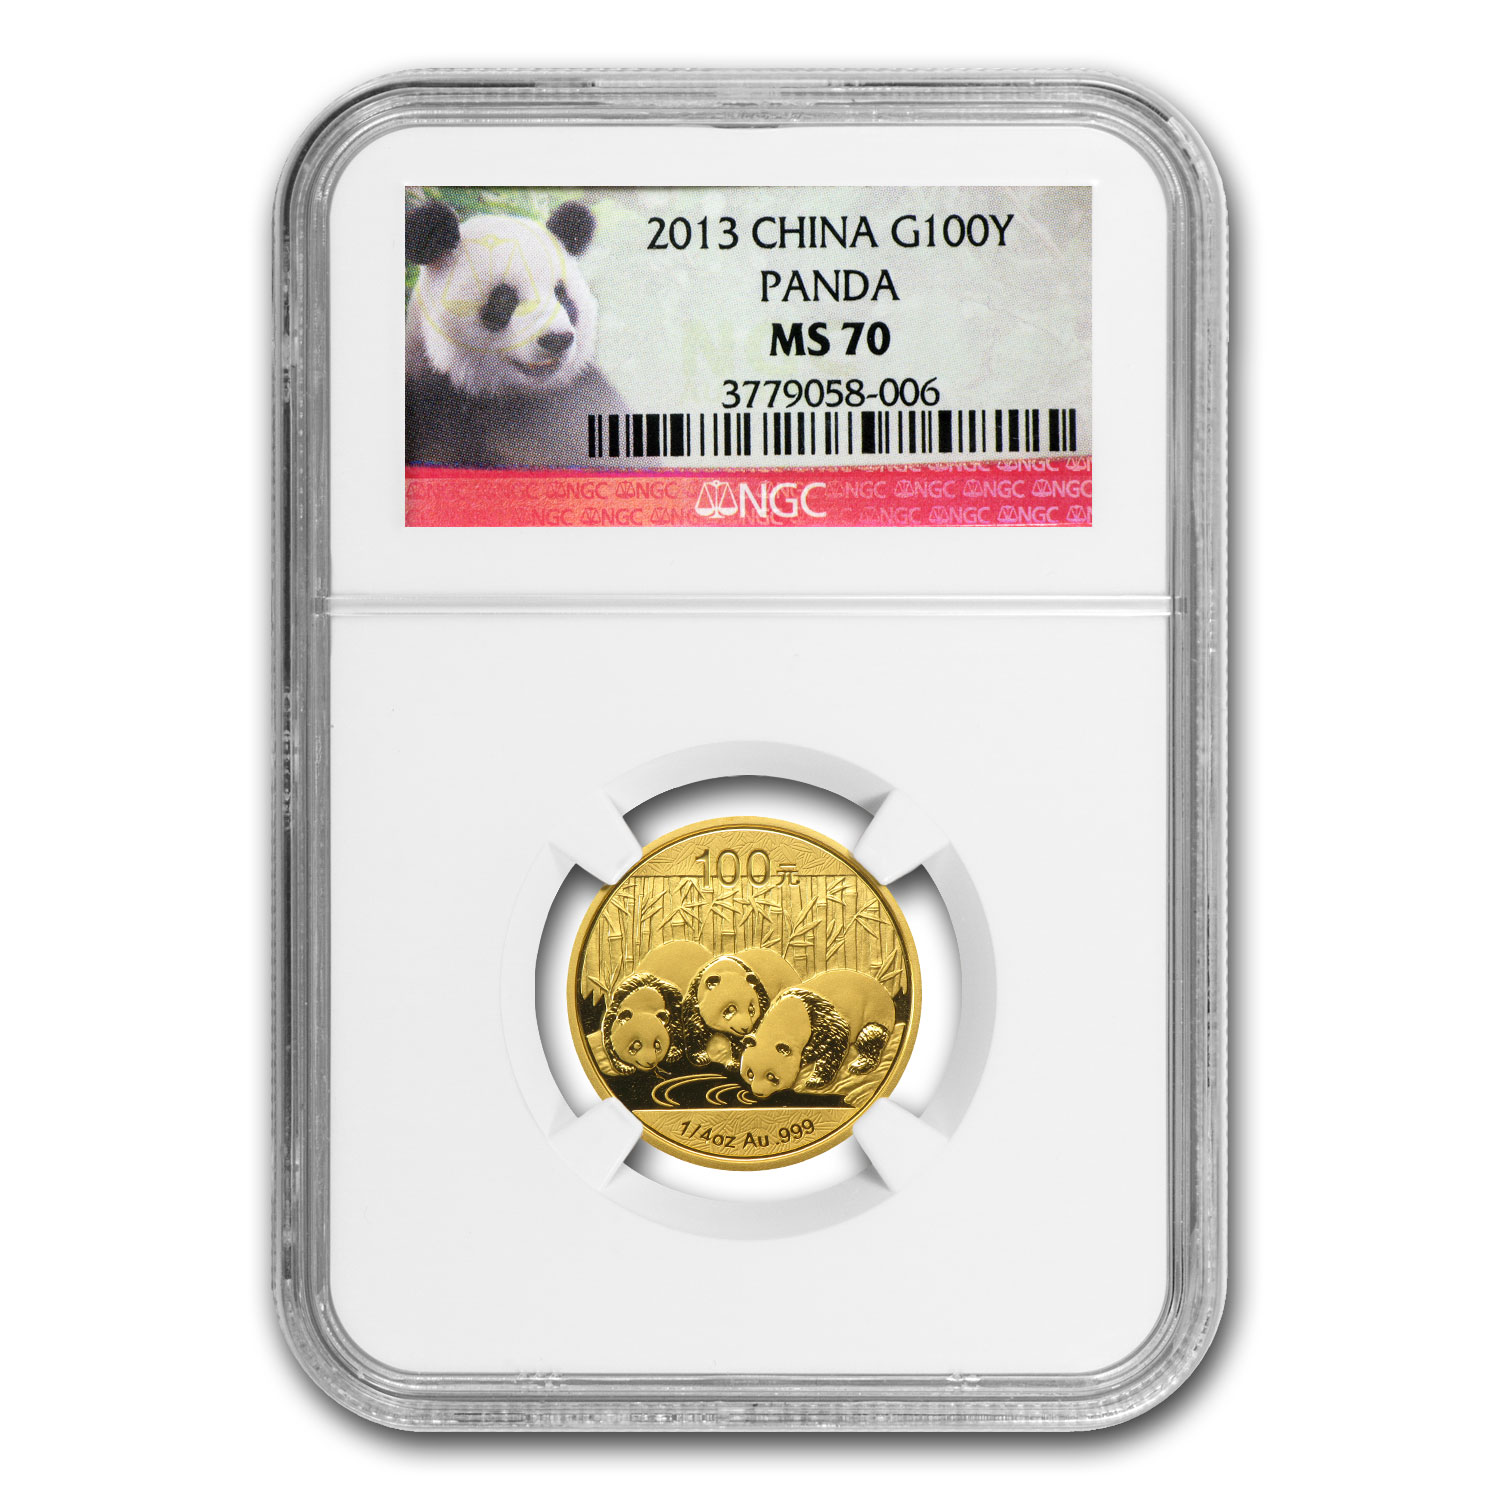 2013 (1/4 oz) Gold Chinese Panda - MS-70 NGC